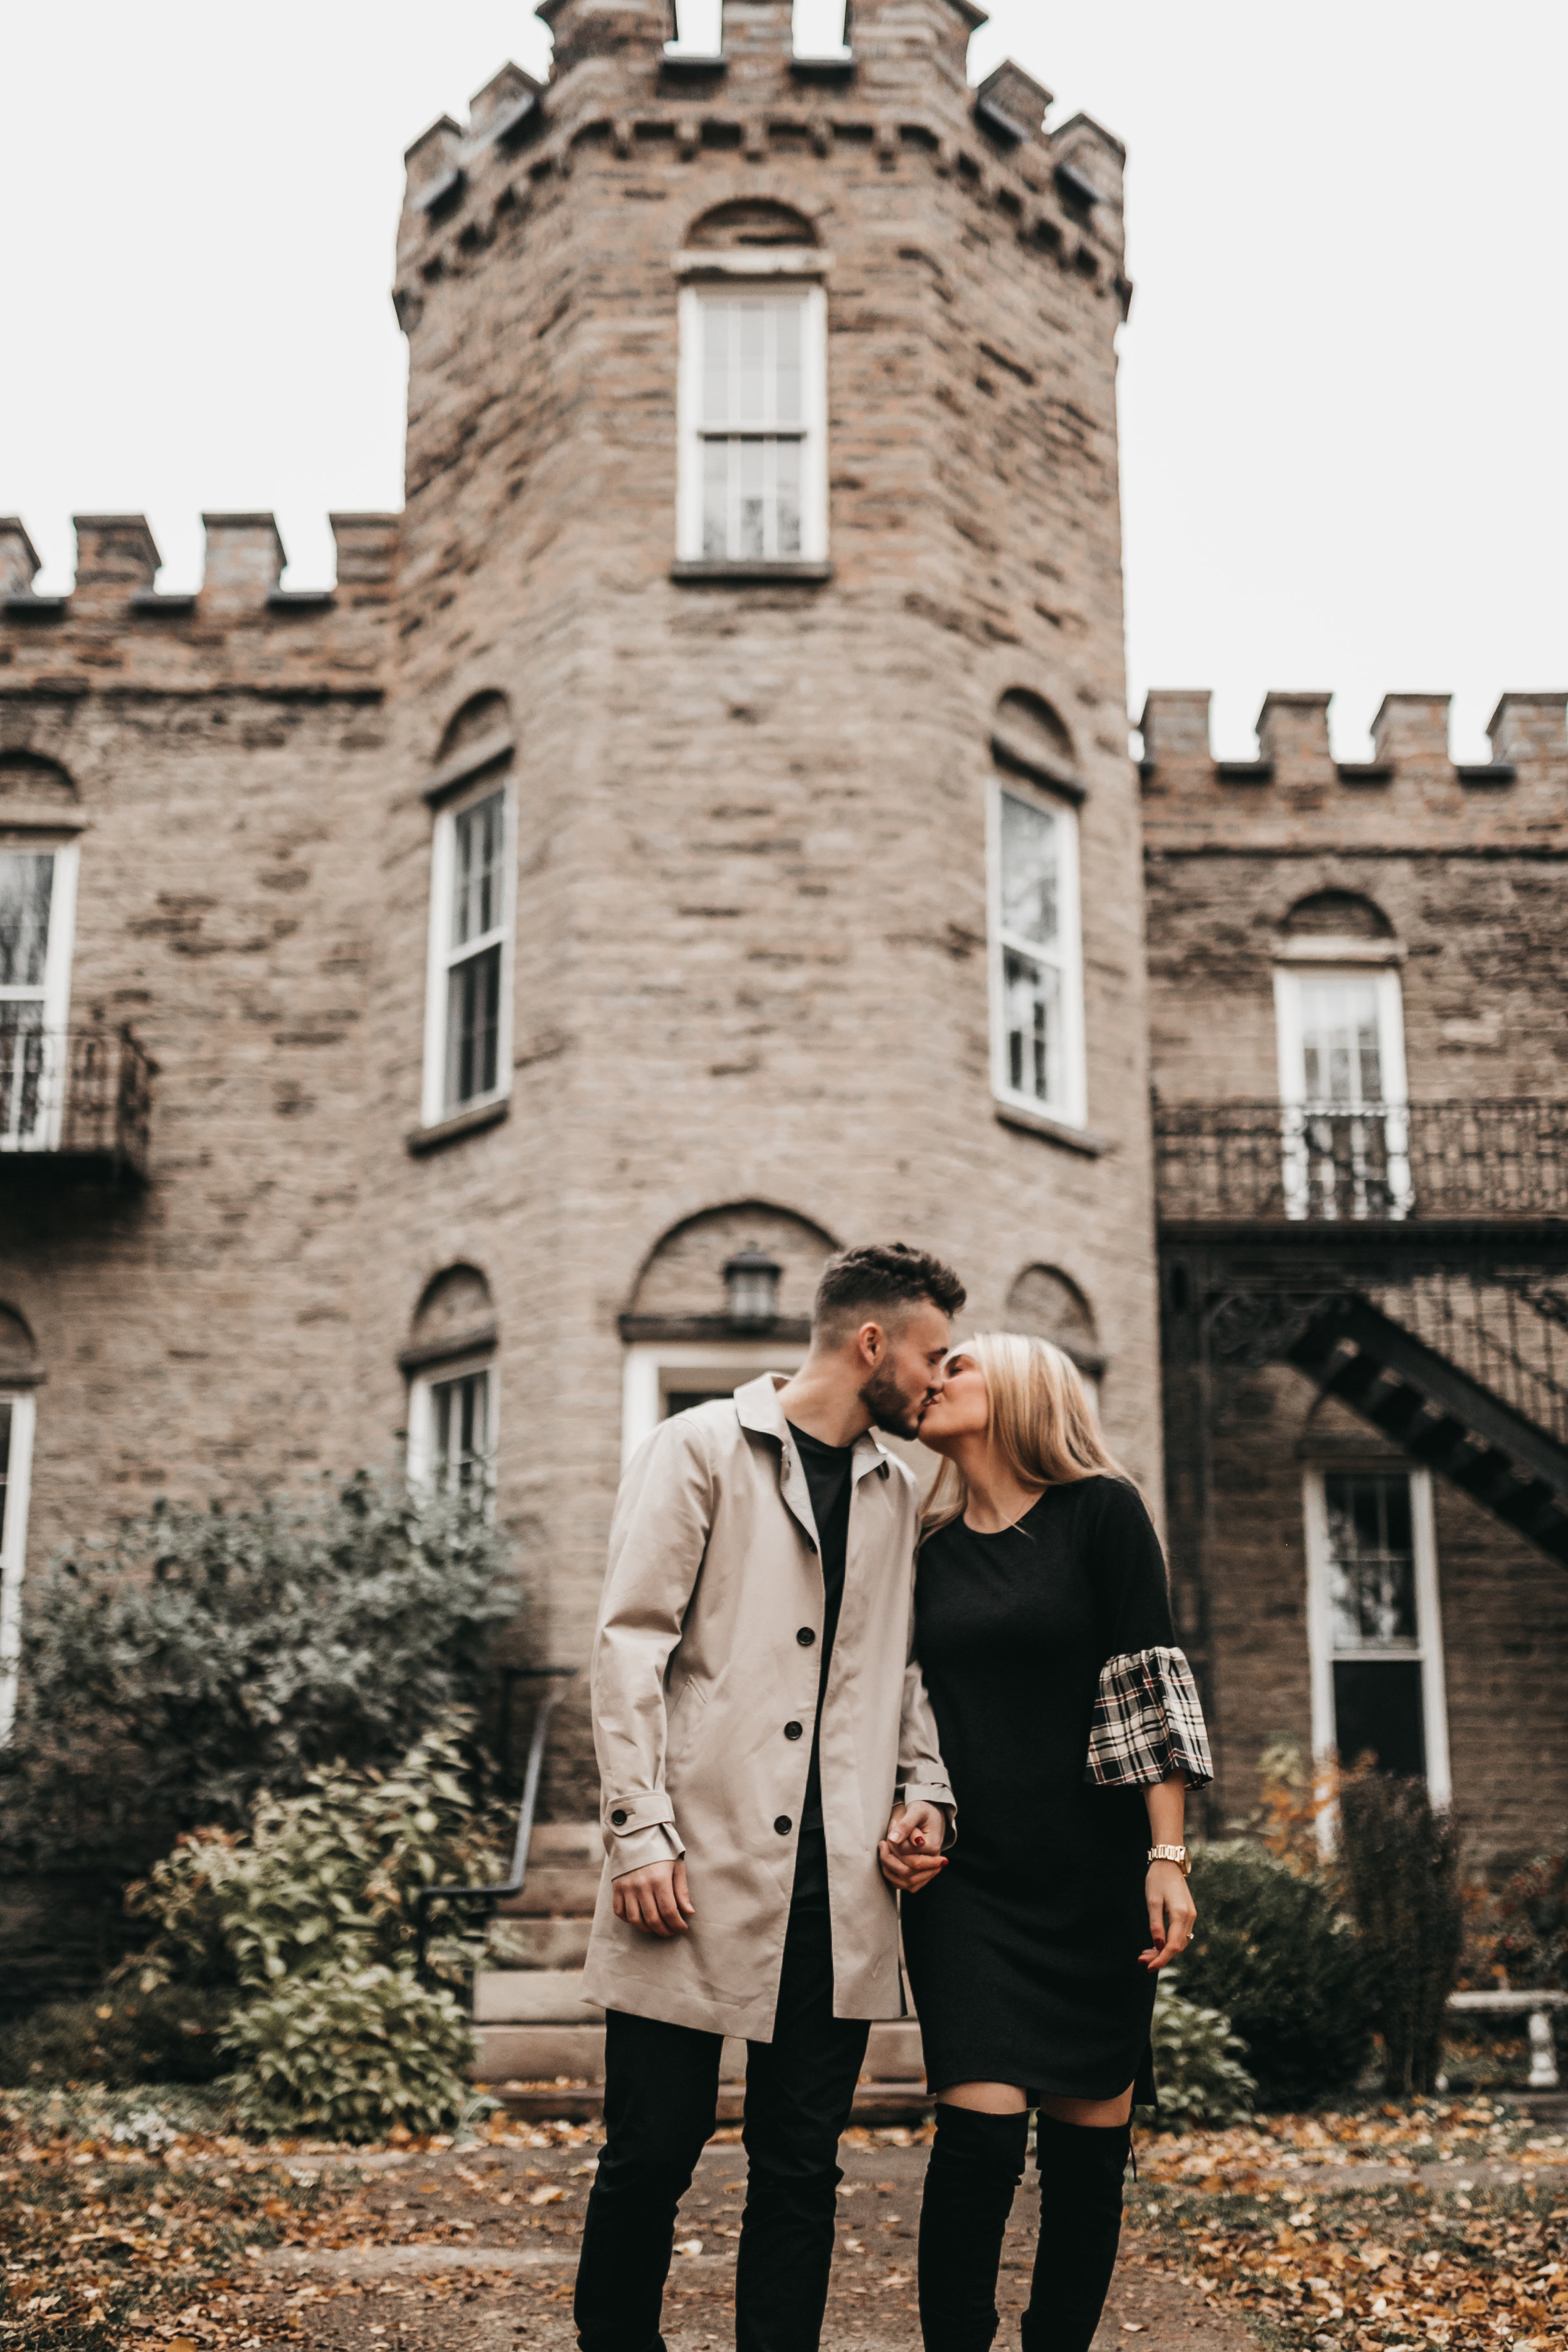 """SHANE + OLIVIA - """"Leanna, you made our engagement photo process so easy and FUN! We loved every minute of it because you made us feel so comfortable and let us be ourselves! The photos came out absolutely AMAZING!!! We love every single one of them and are so thankful that you are the one who captures these moments for us! We love you!!"""""""